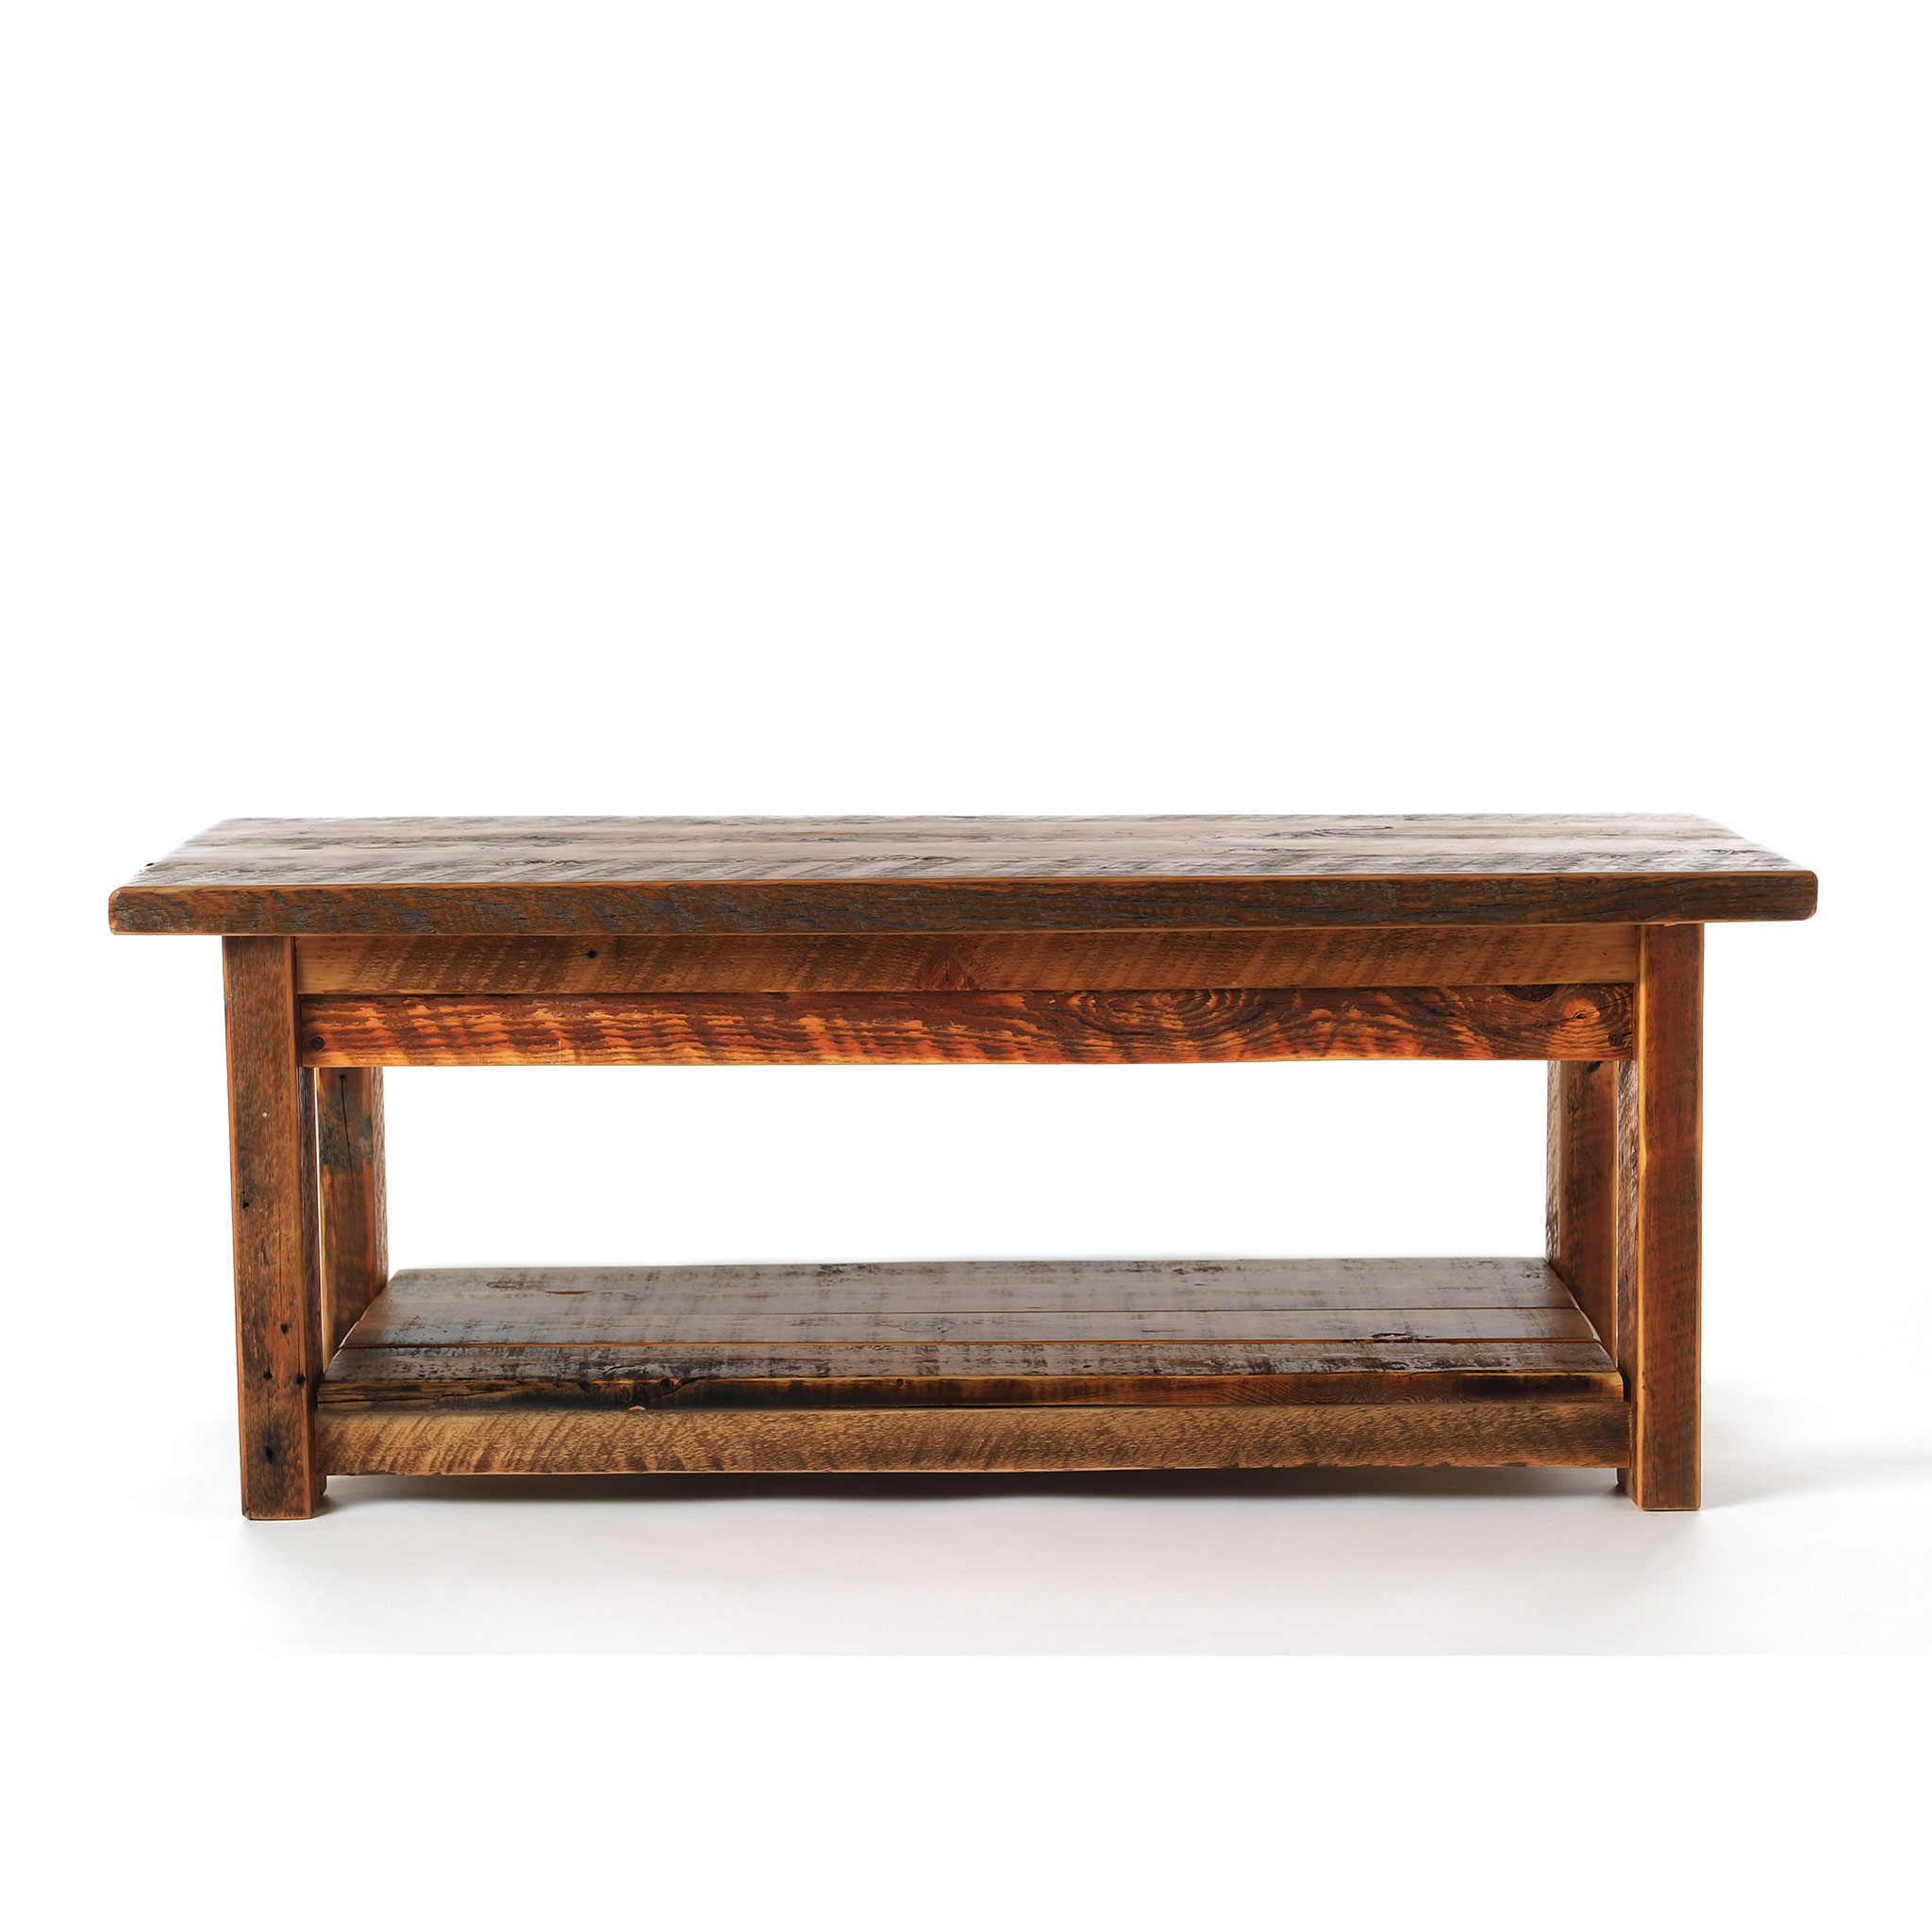 COFFEETABLE-BW-FRONT.JPG